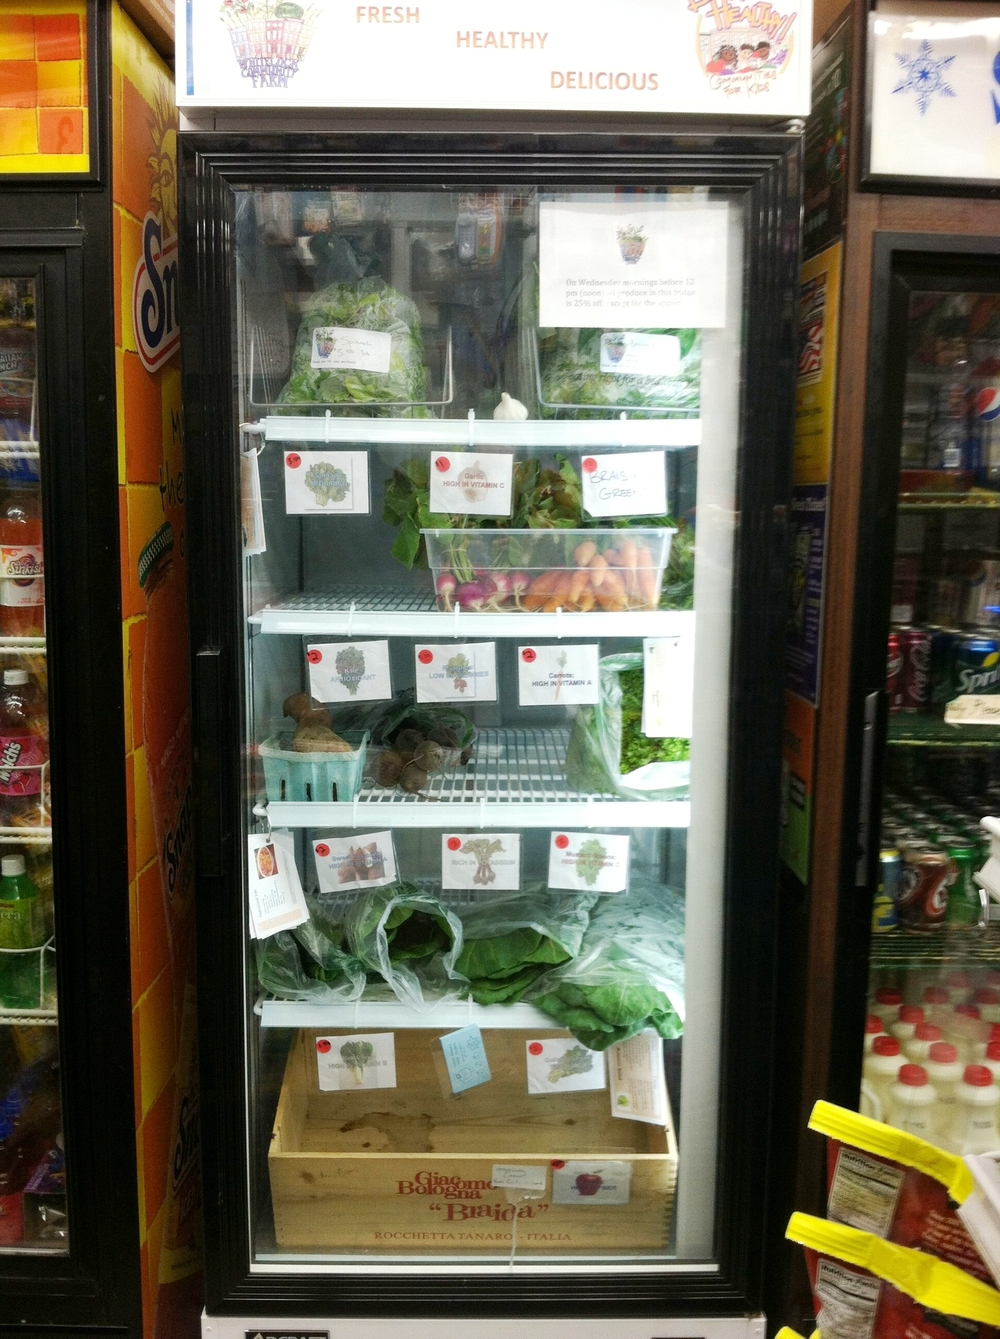 Whitelock Community Farm fridge